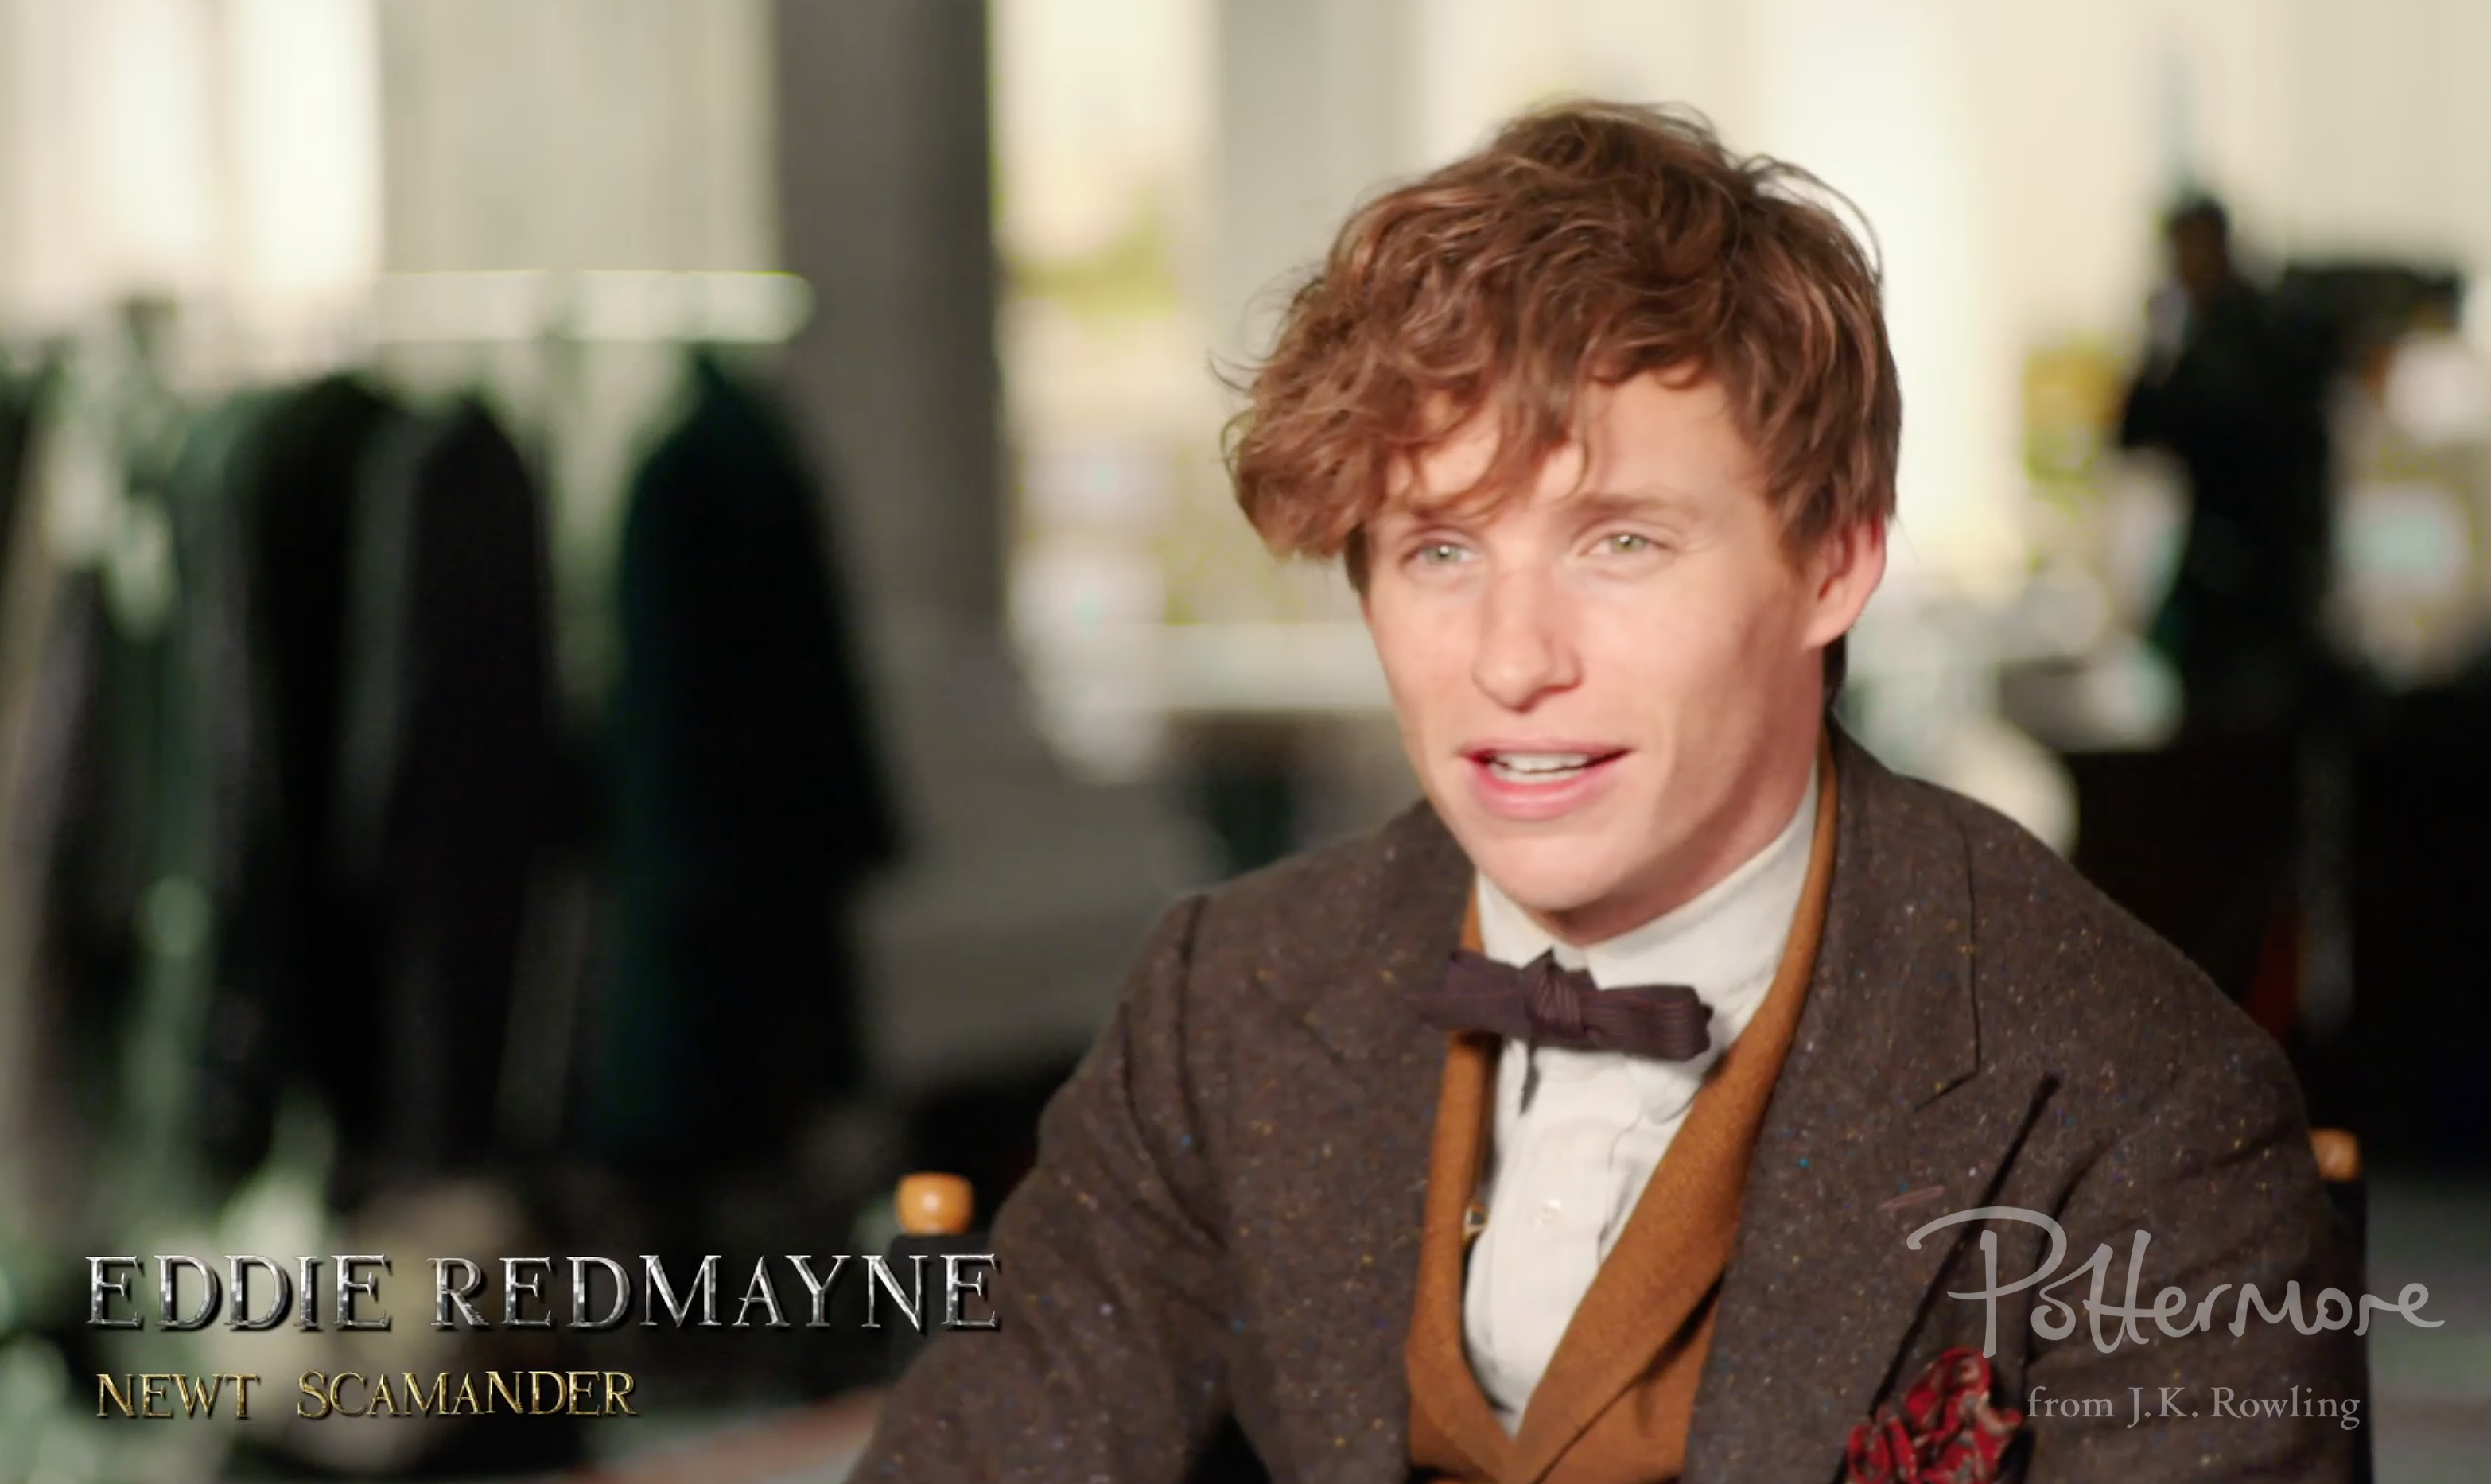 Eddie Redmayne Celebration video interview shot